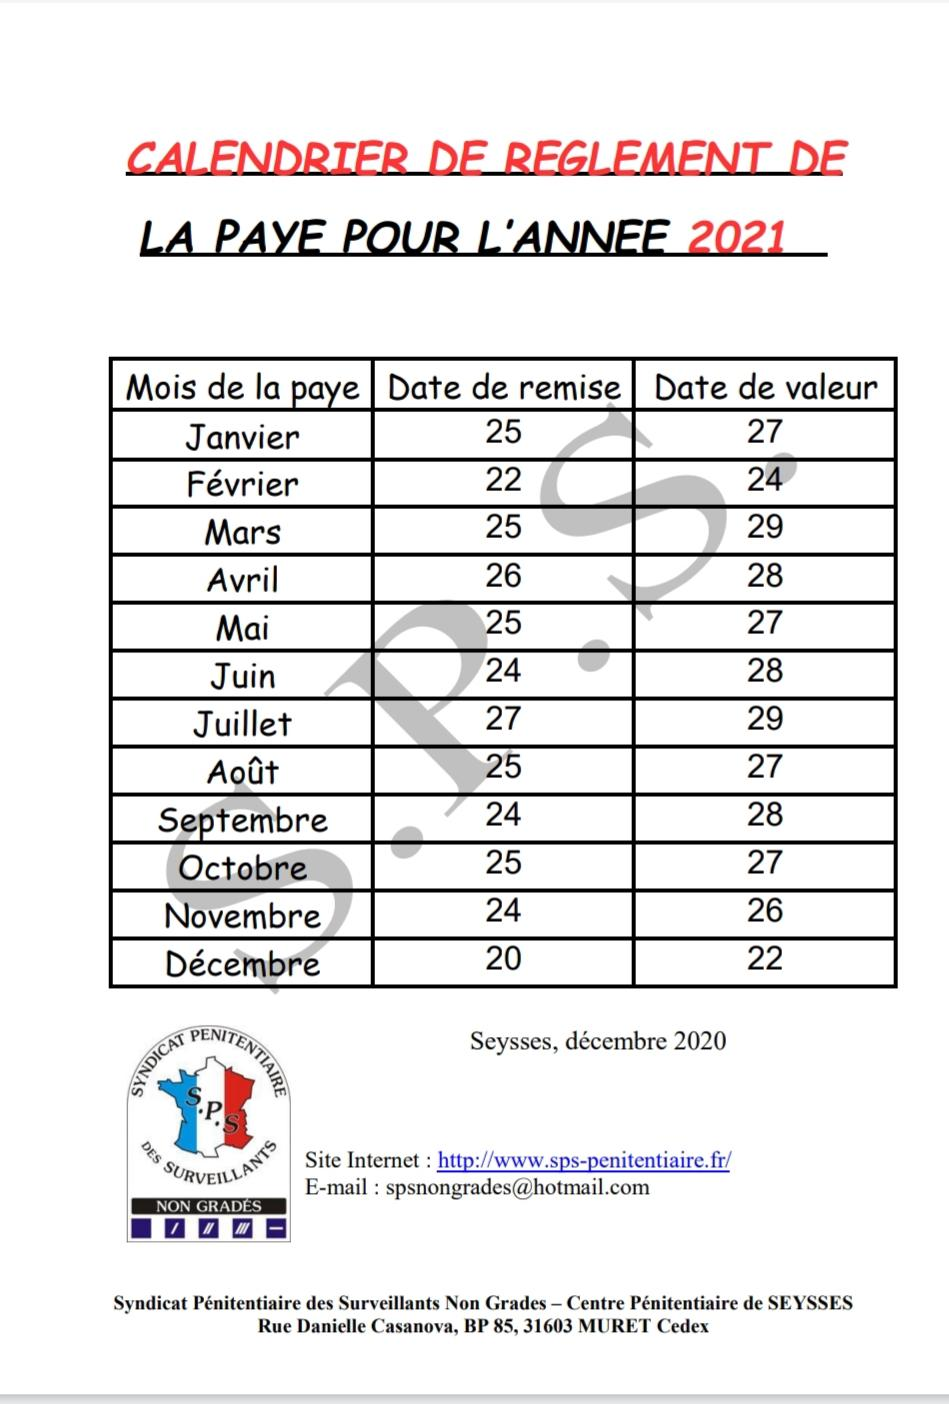 Calendrier des payes 2021